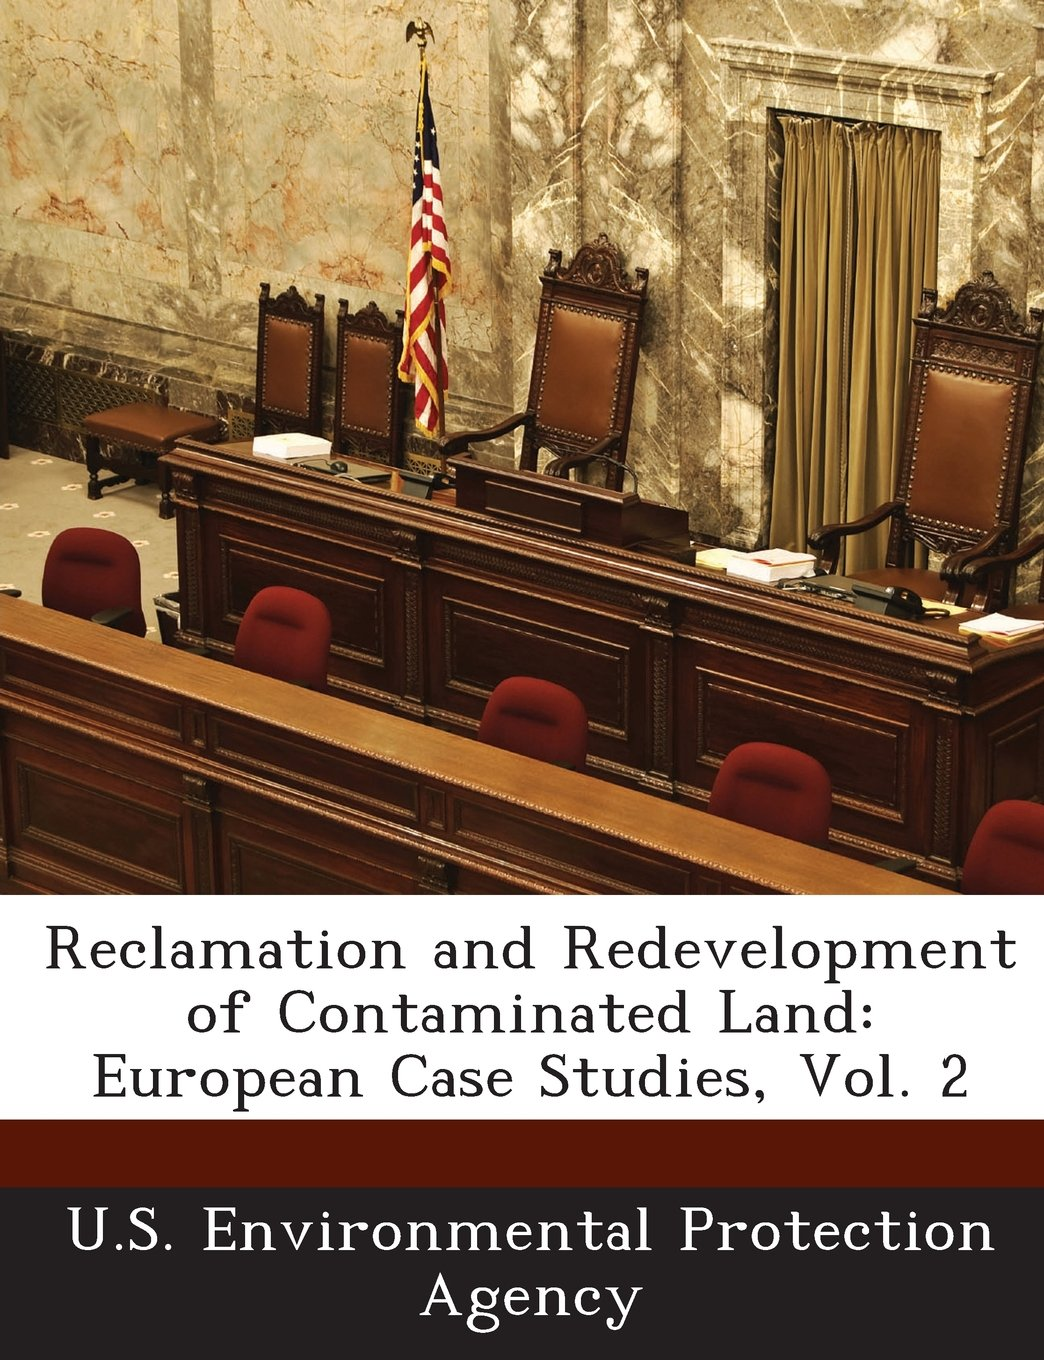 Download Reclamation and Redevelopment of Contaminated Land: European Case Studies, Vol. 2 ebook